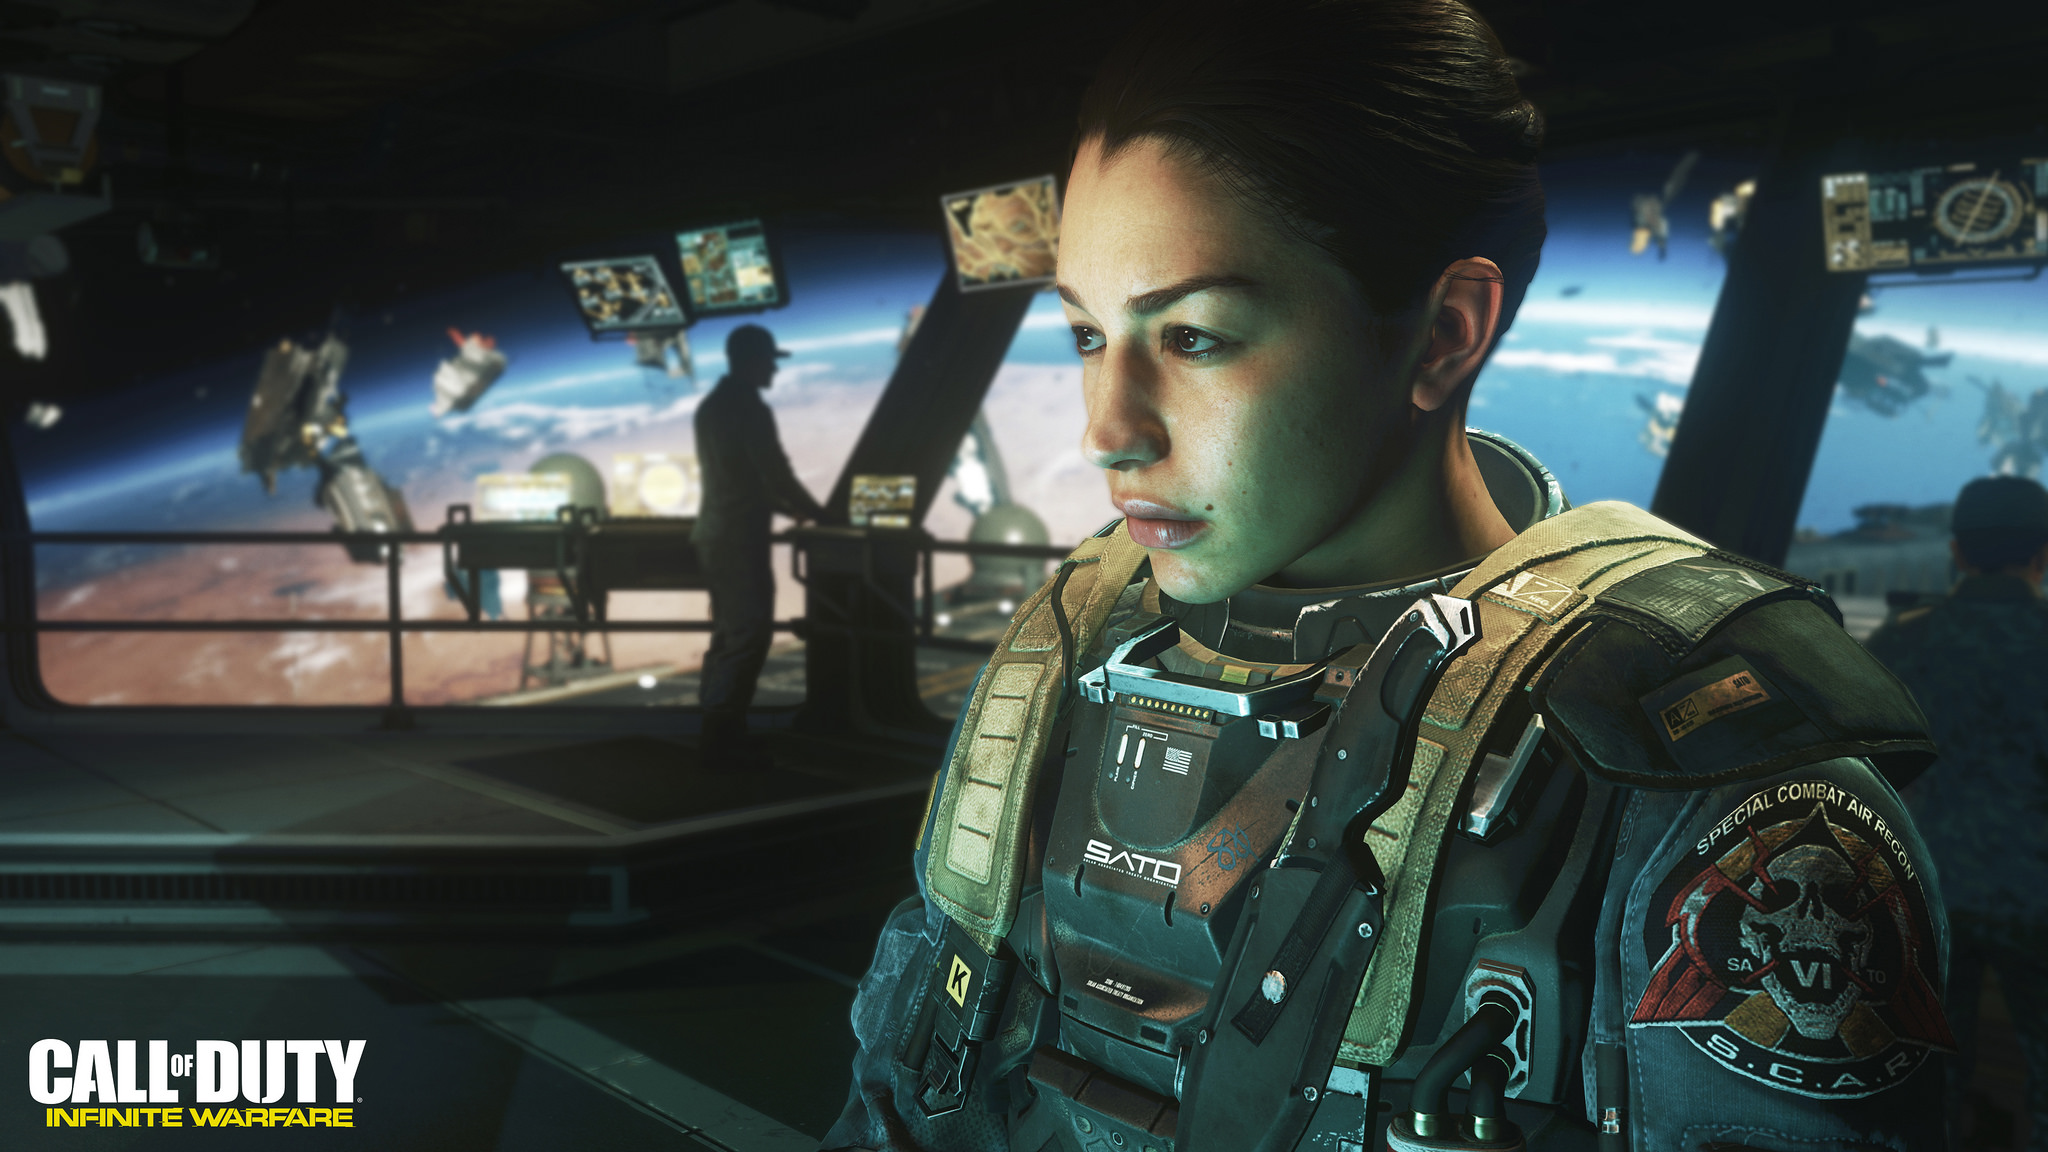 Call-of-Duty-Infinite-Warfare (3)